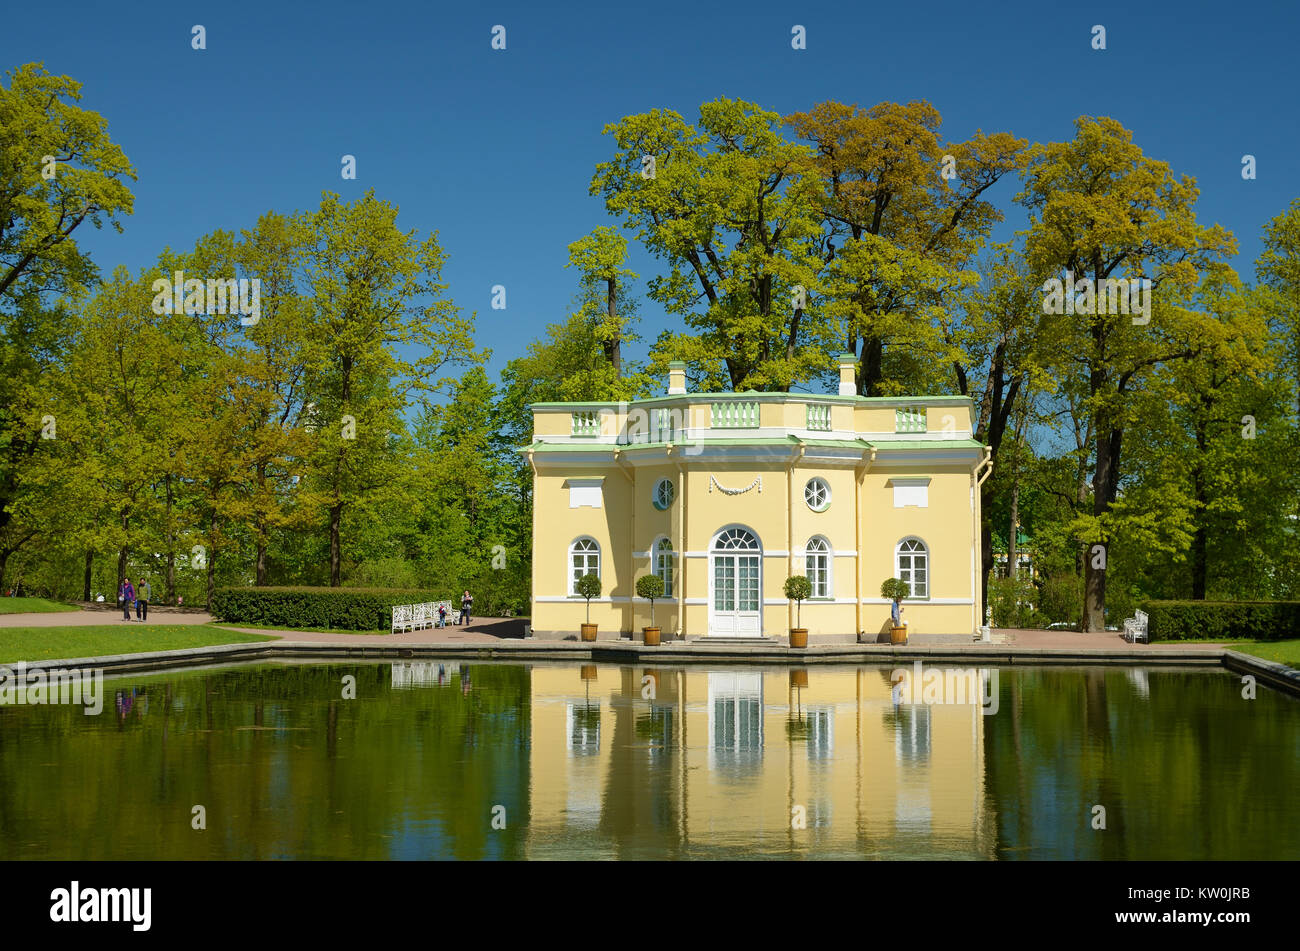 04.06.2017.Russia.Pushkin.Catherine Park.The picture shows a bath designed for the aristocrats. - Stock Image